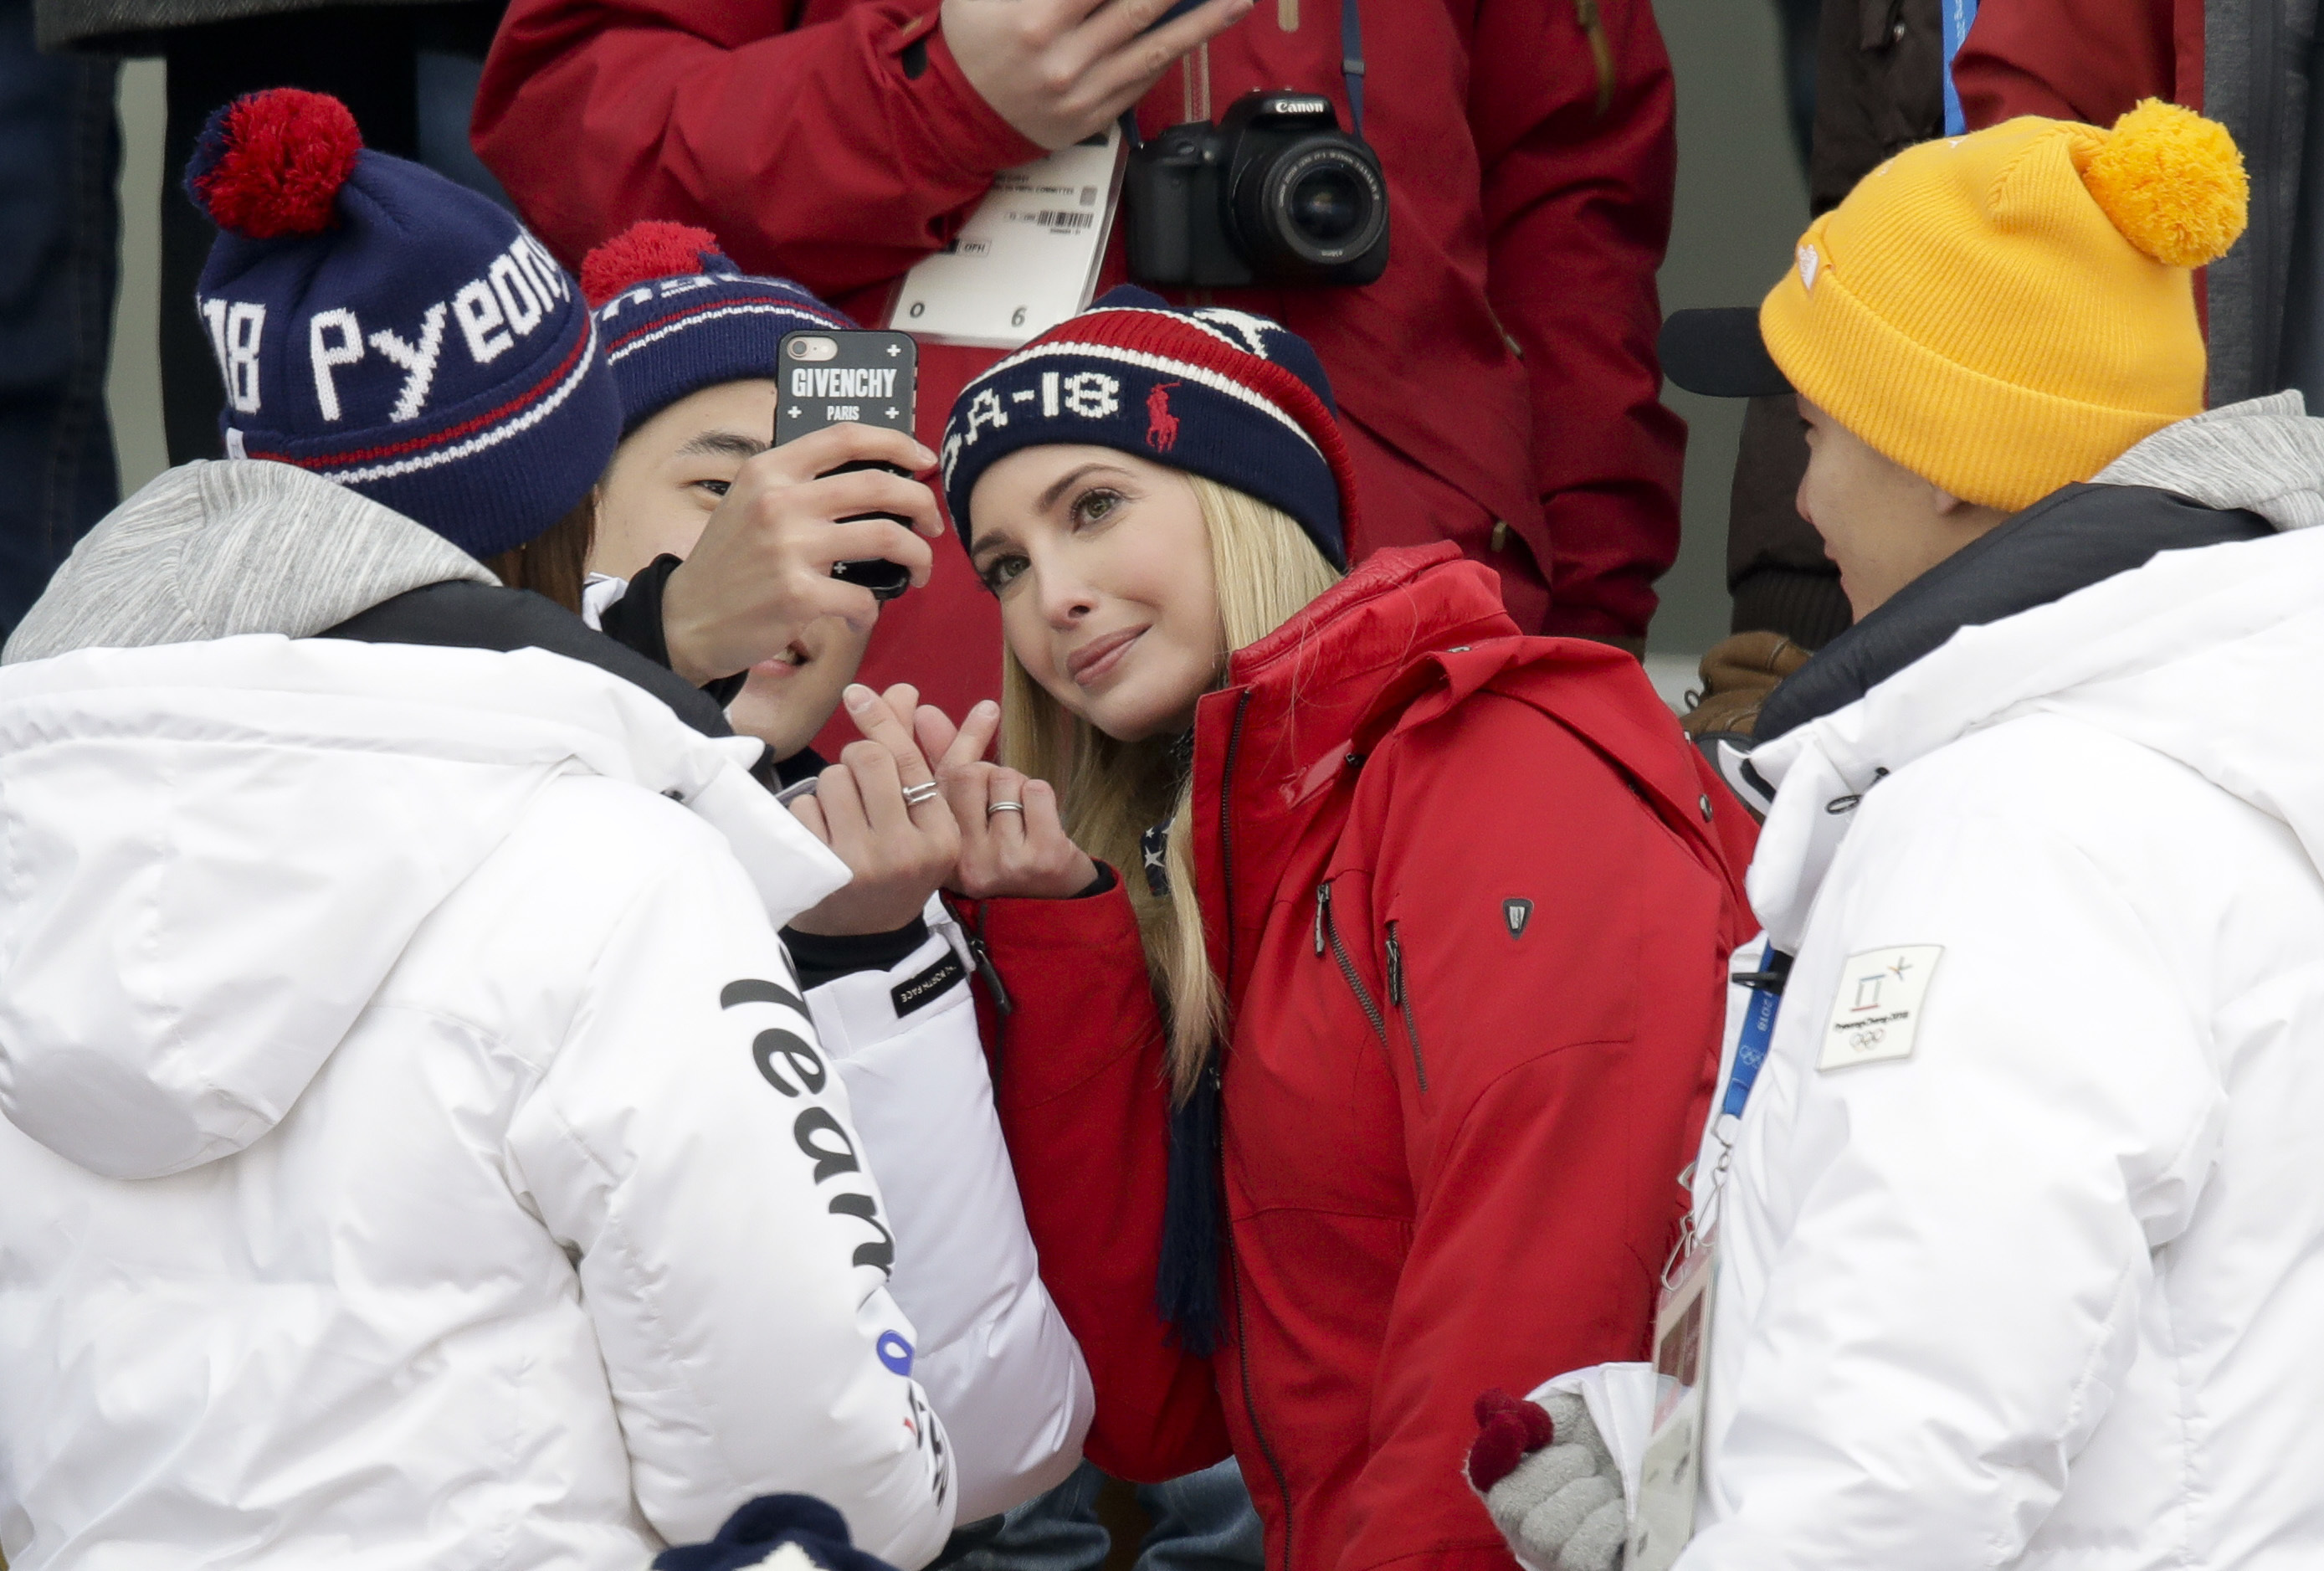 Ivanka Trump poses for a picture during the men's Big Air snowboard competition at the 2018 Winter Olympics in Pyeongchang, South Korea, Saturday, Feb. 24, 2018. (AP Photo/Dmitri Lovetsky)